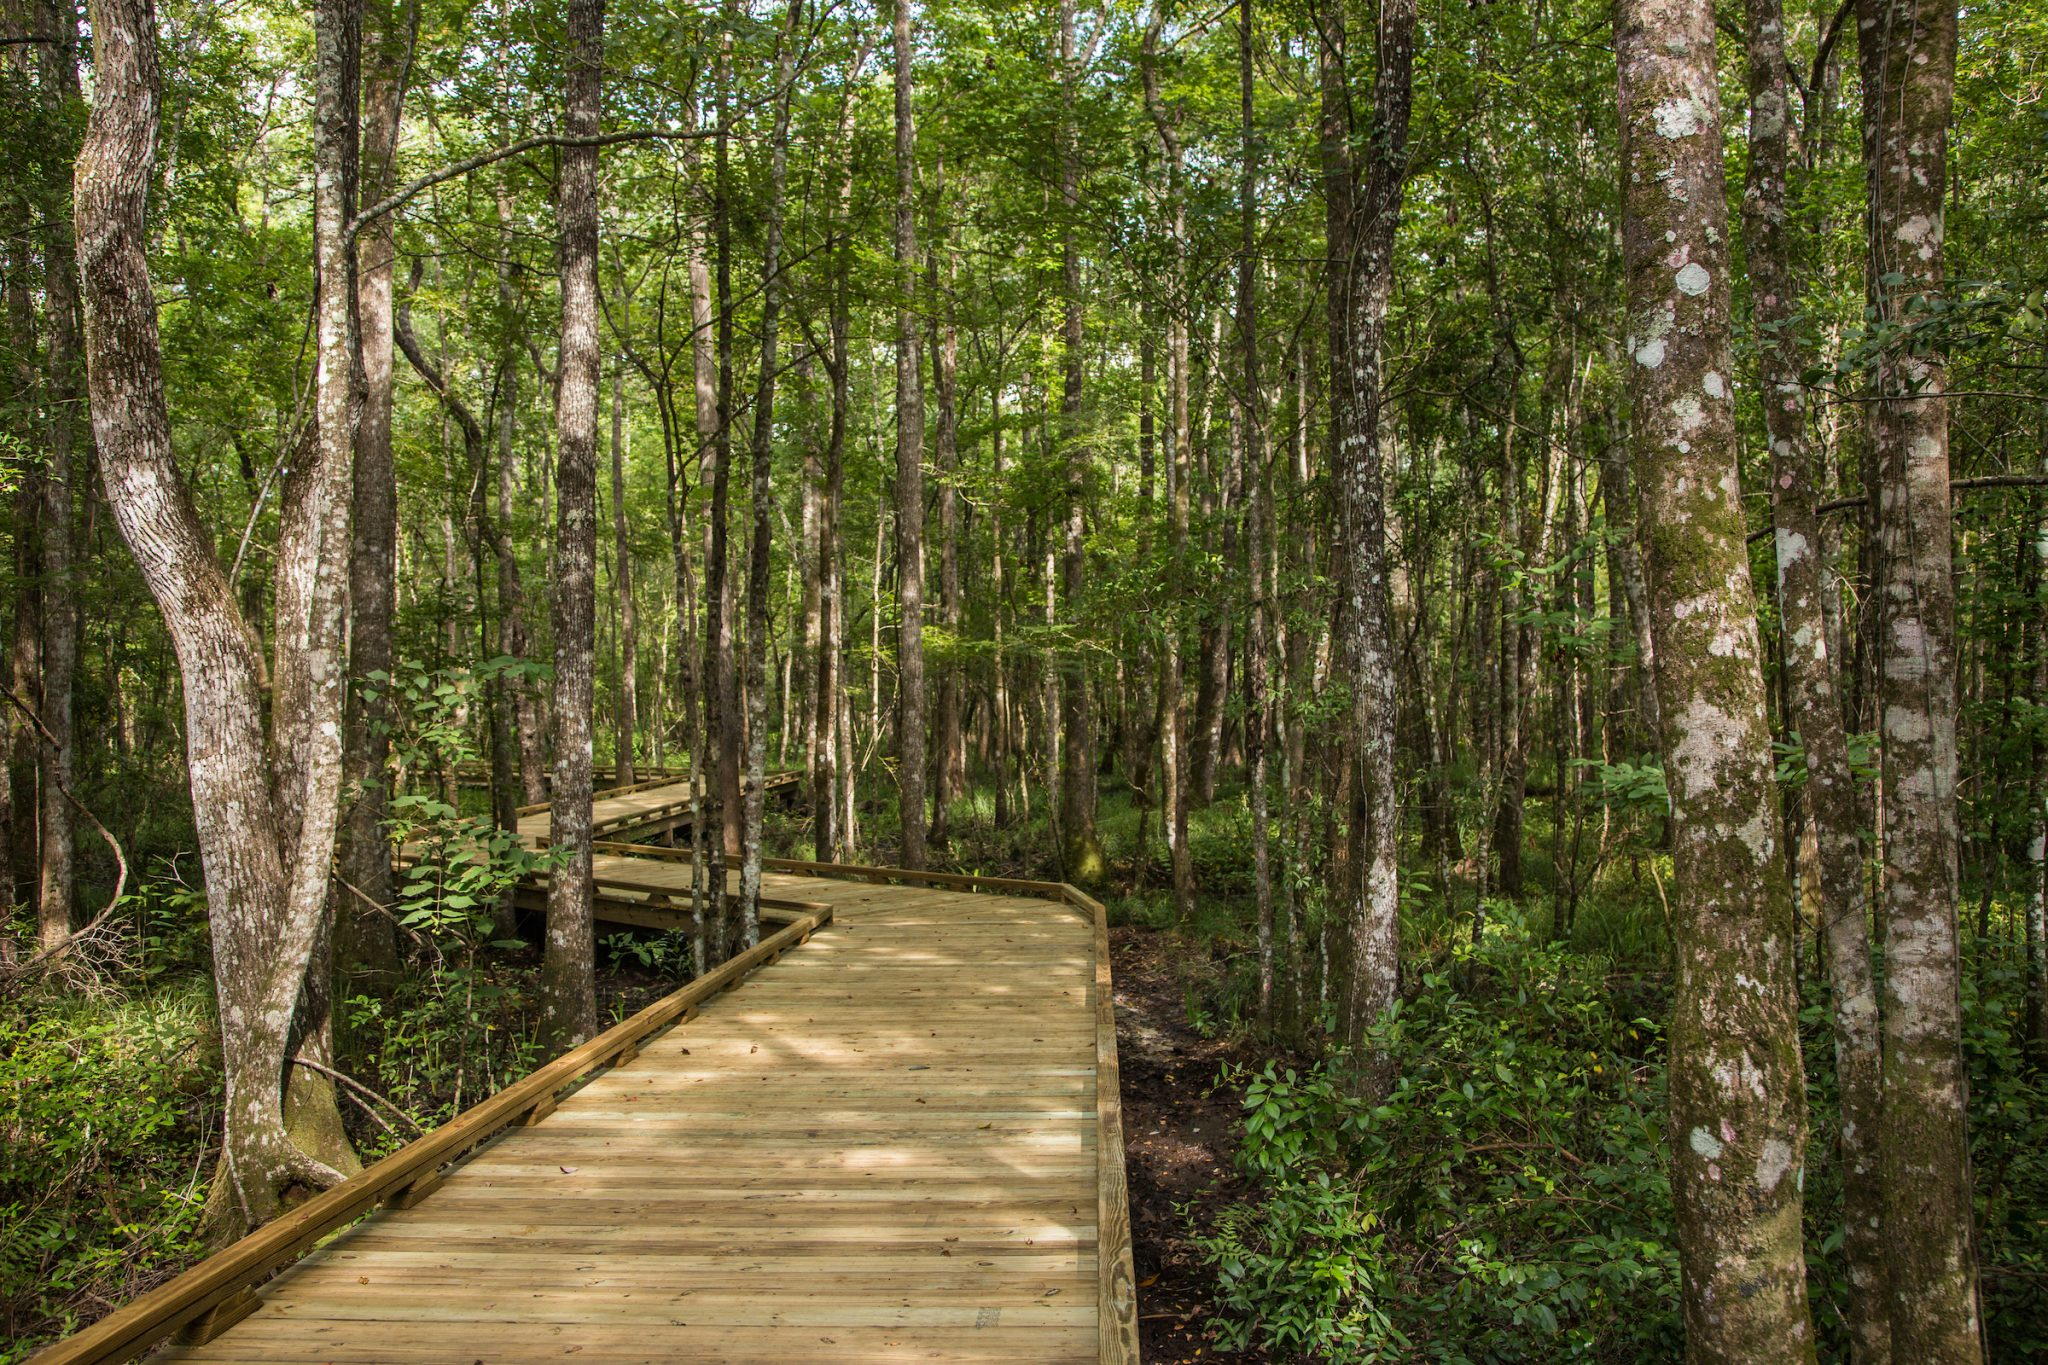 Shearwater nature trail